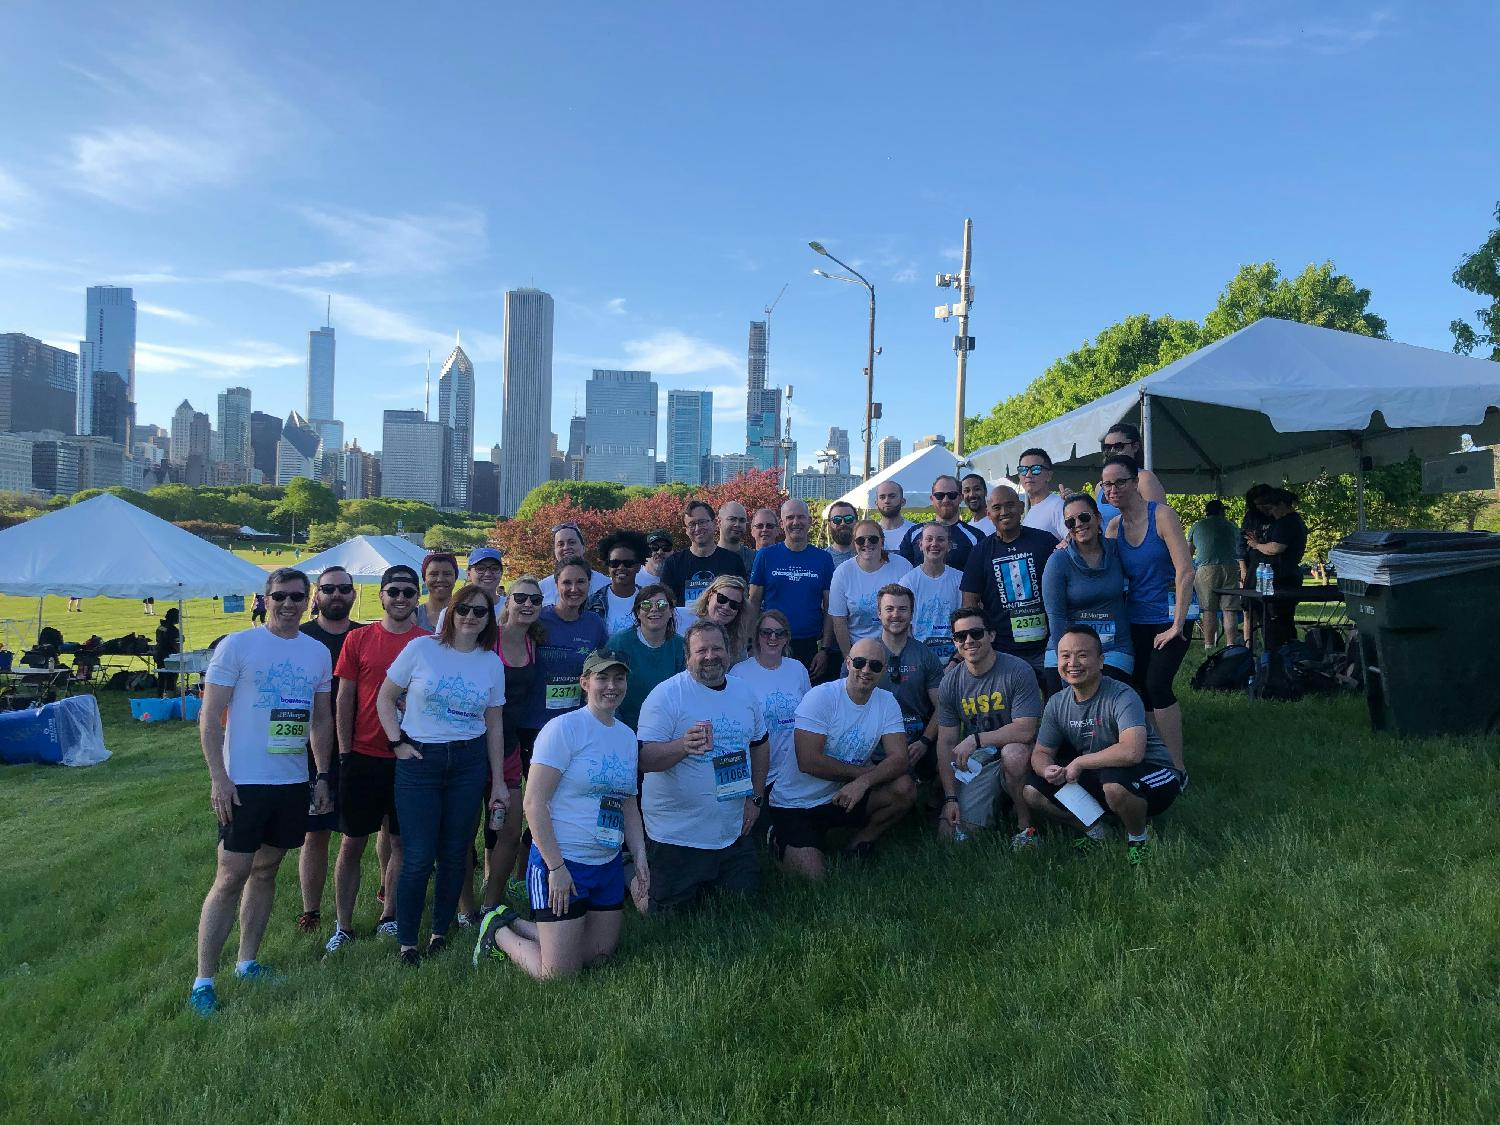 Bounteous team at the chase corporate challenge